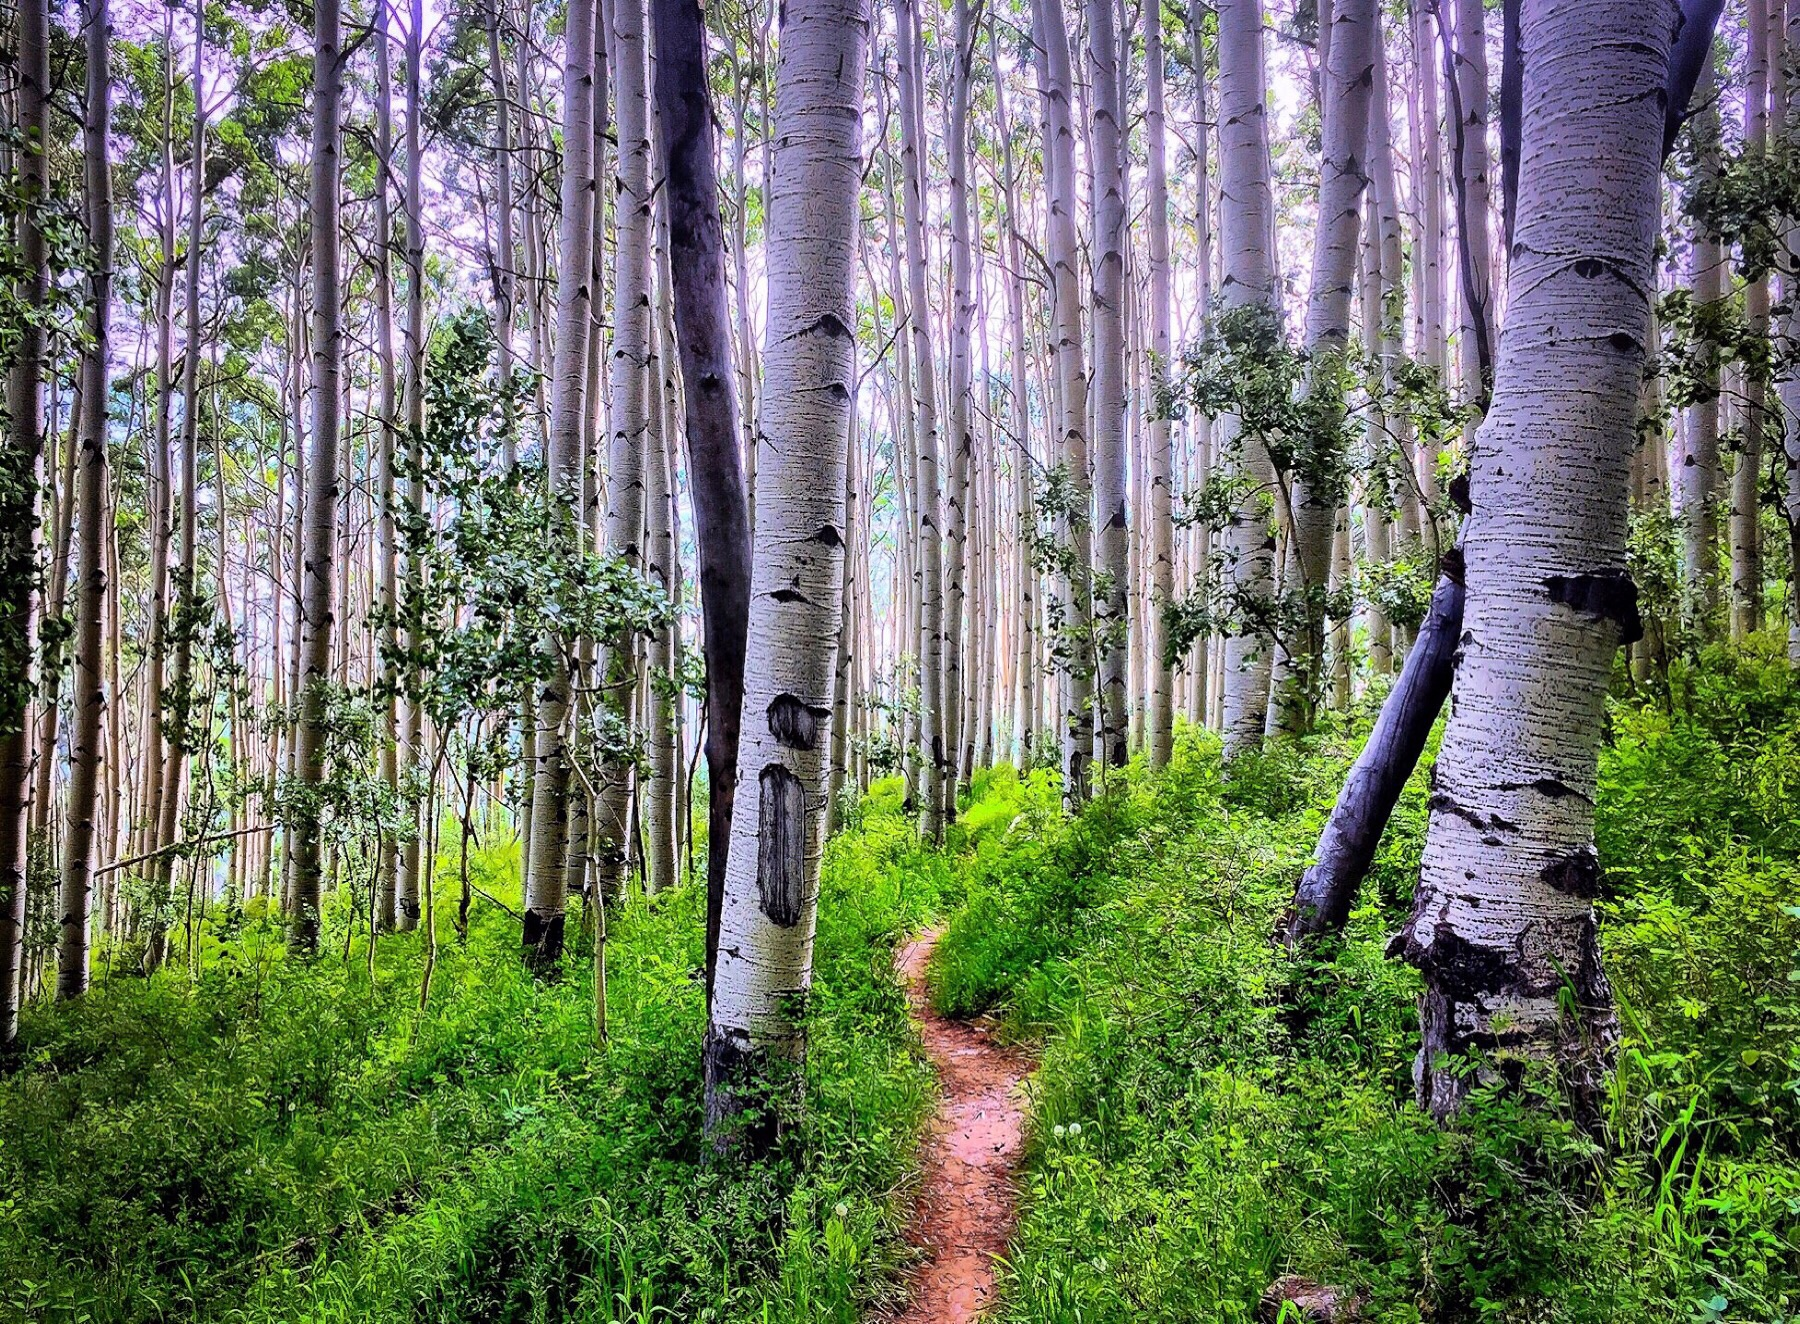 aspen groves line the up-country part of the whole enchilada trail